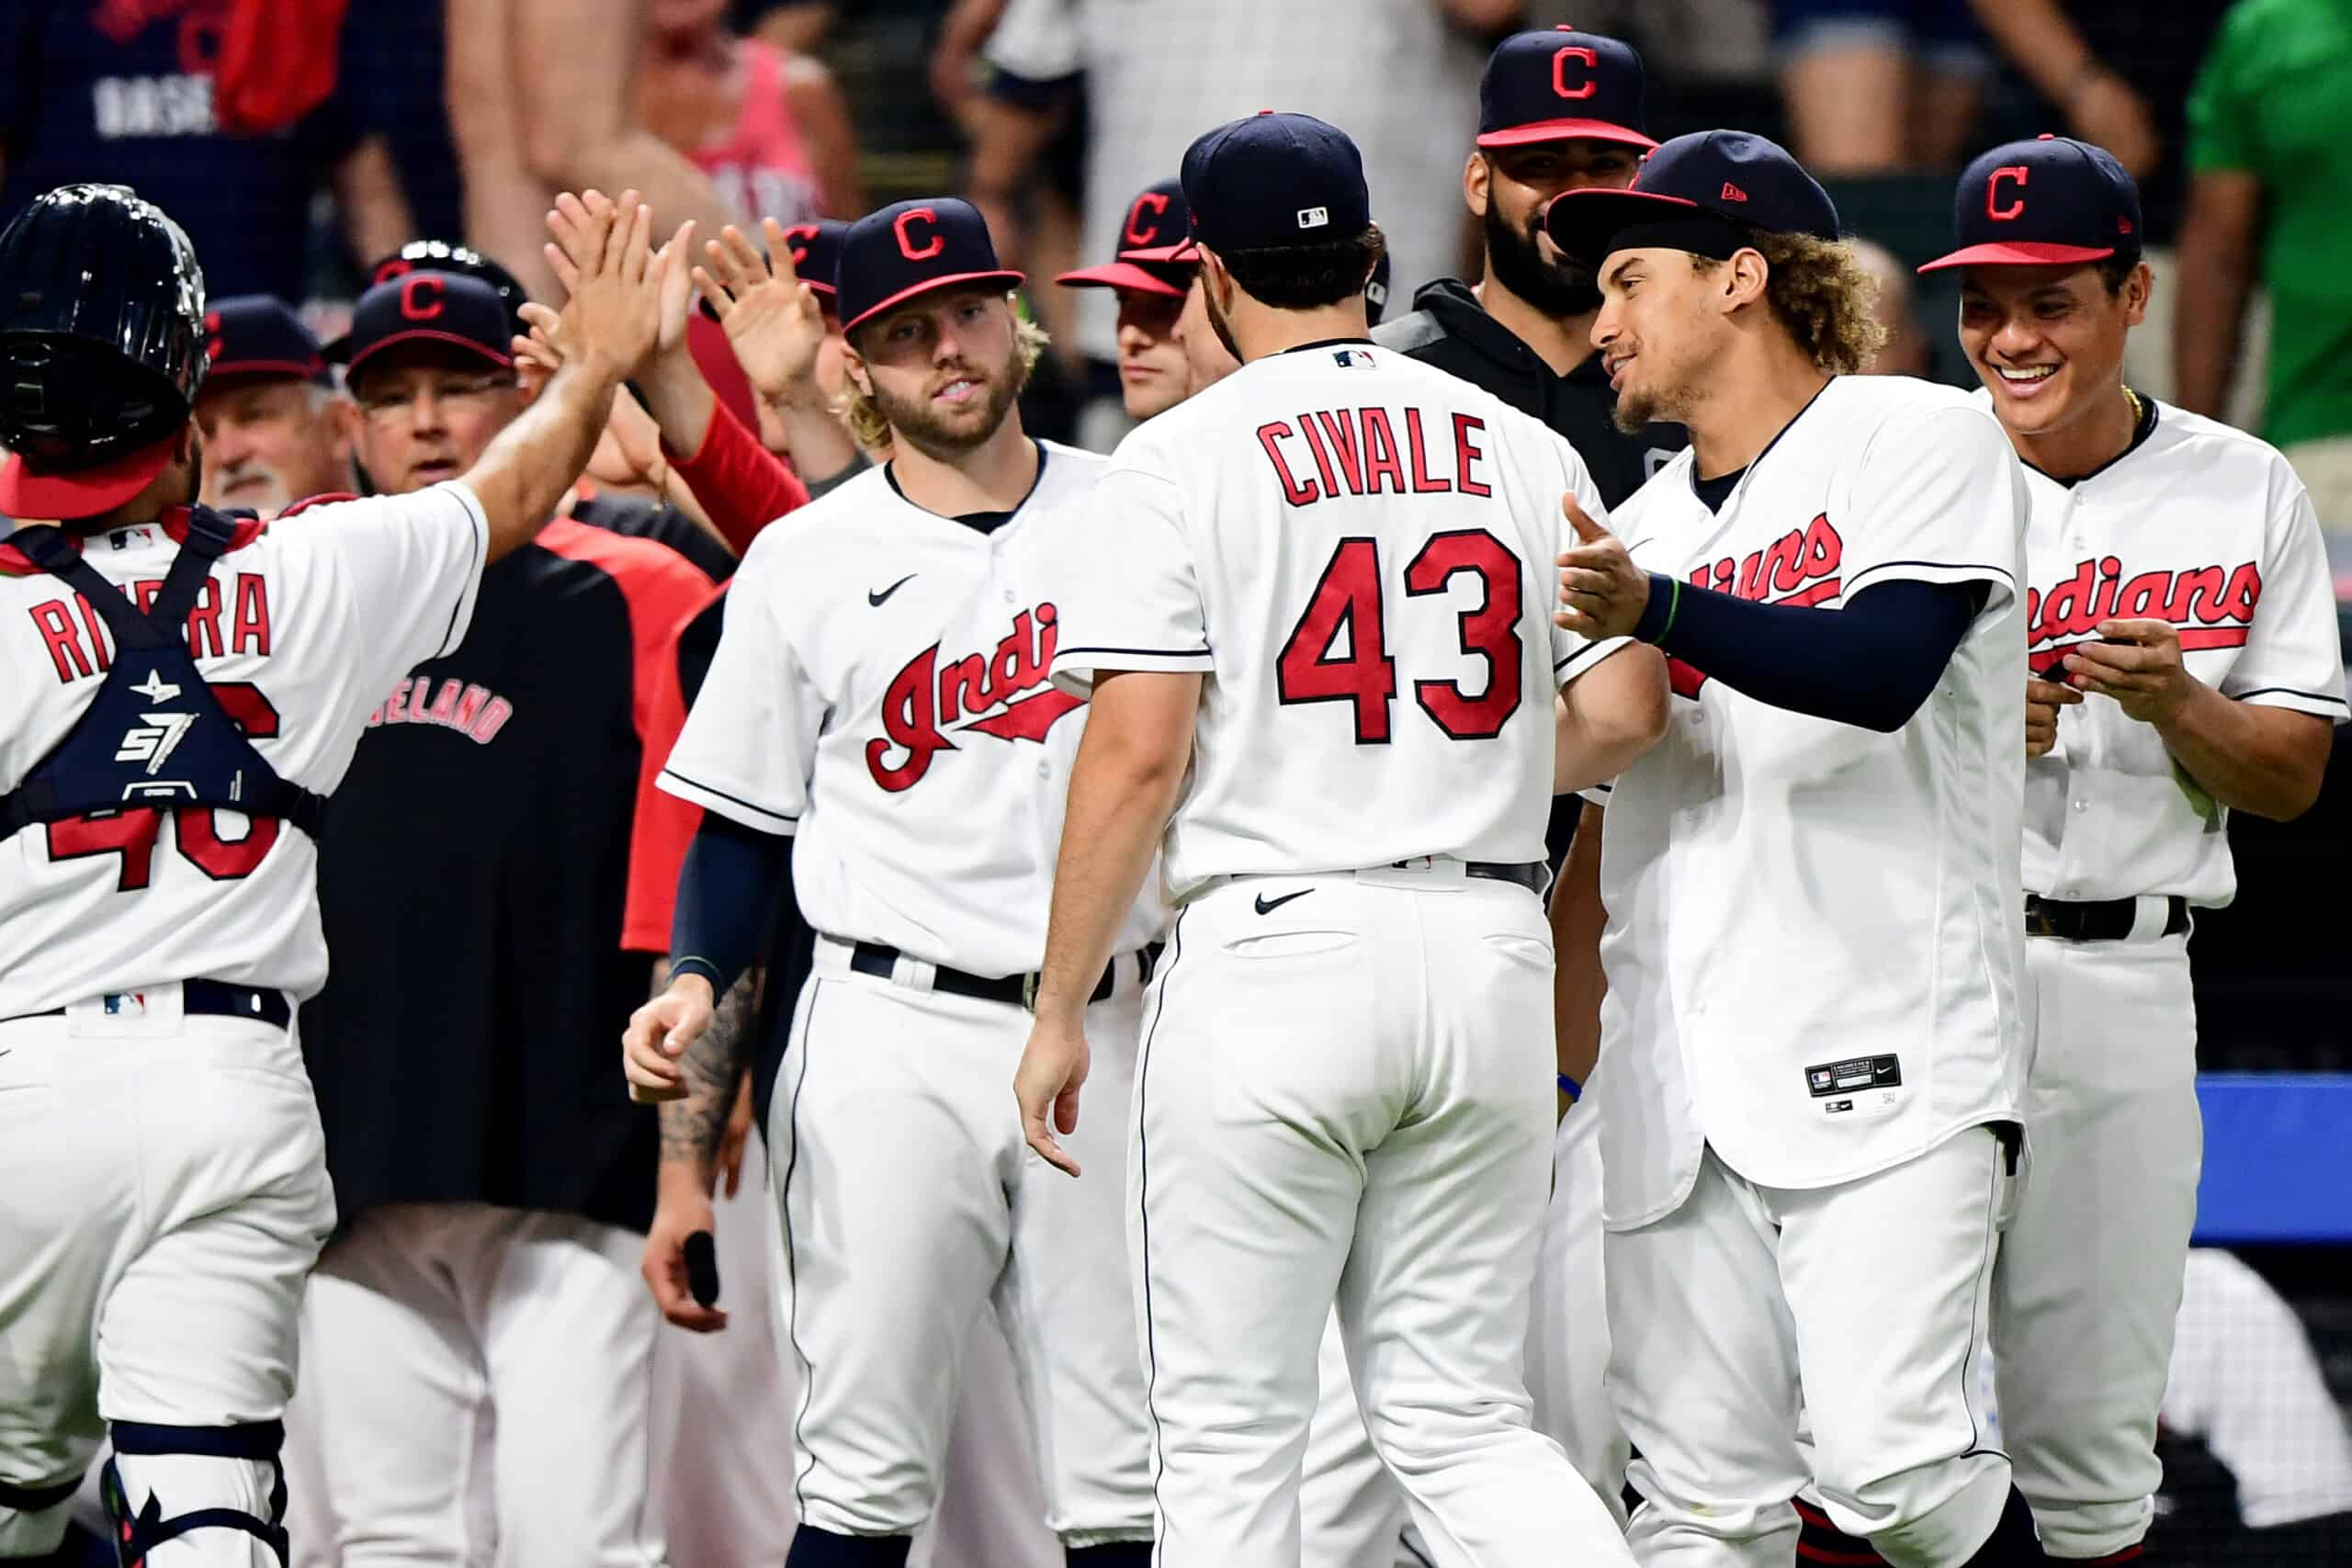 Members of the Cleveland Indians celebrate with Aaron Civale #43 after their 7-0 win over the Seattle Mariners during their game at Progressive Field on June 11, 2021 in Cleveland, Ohio.